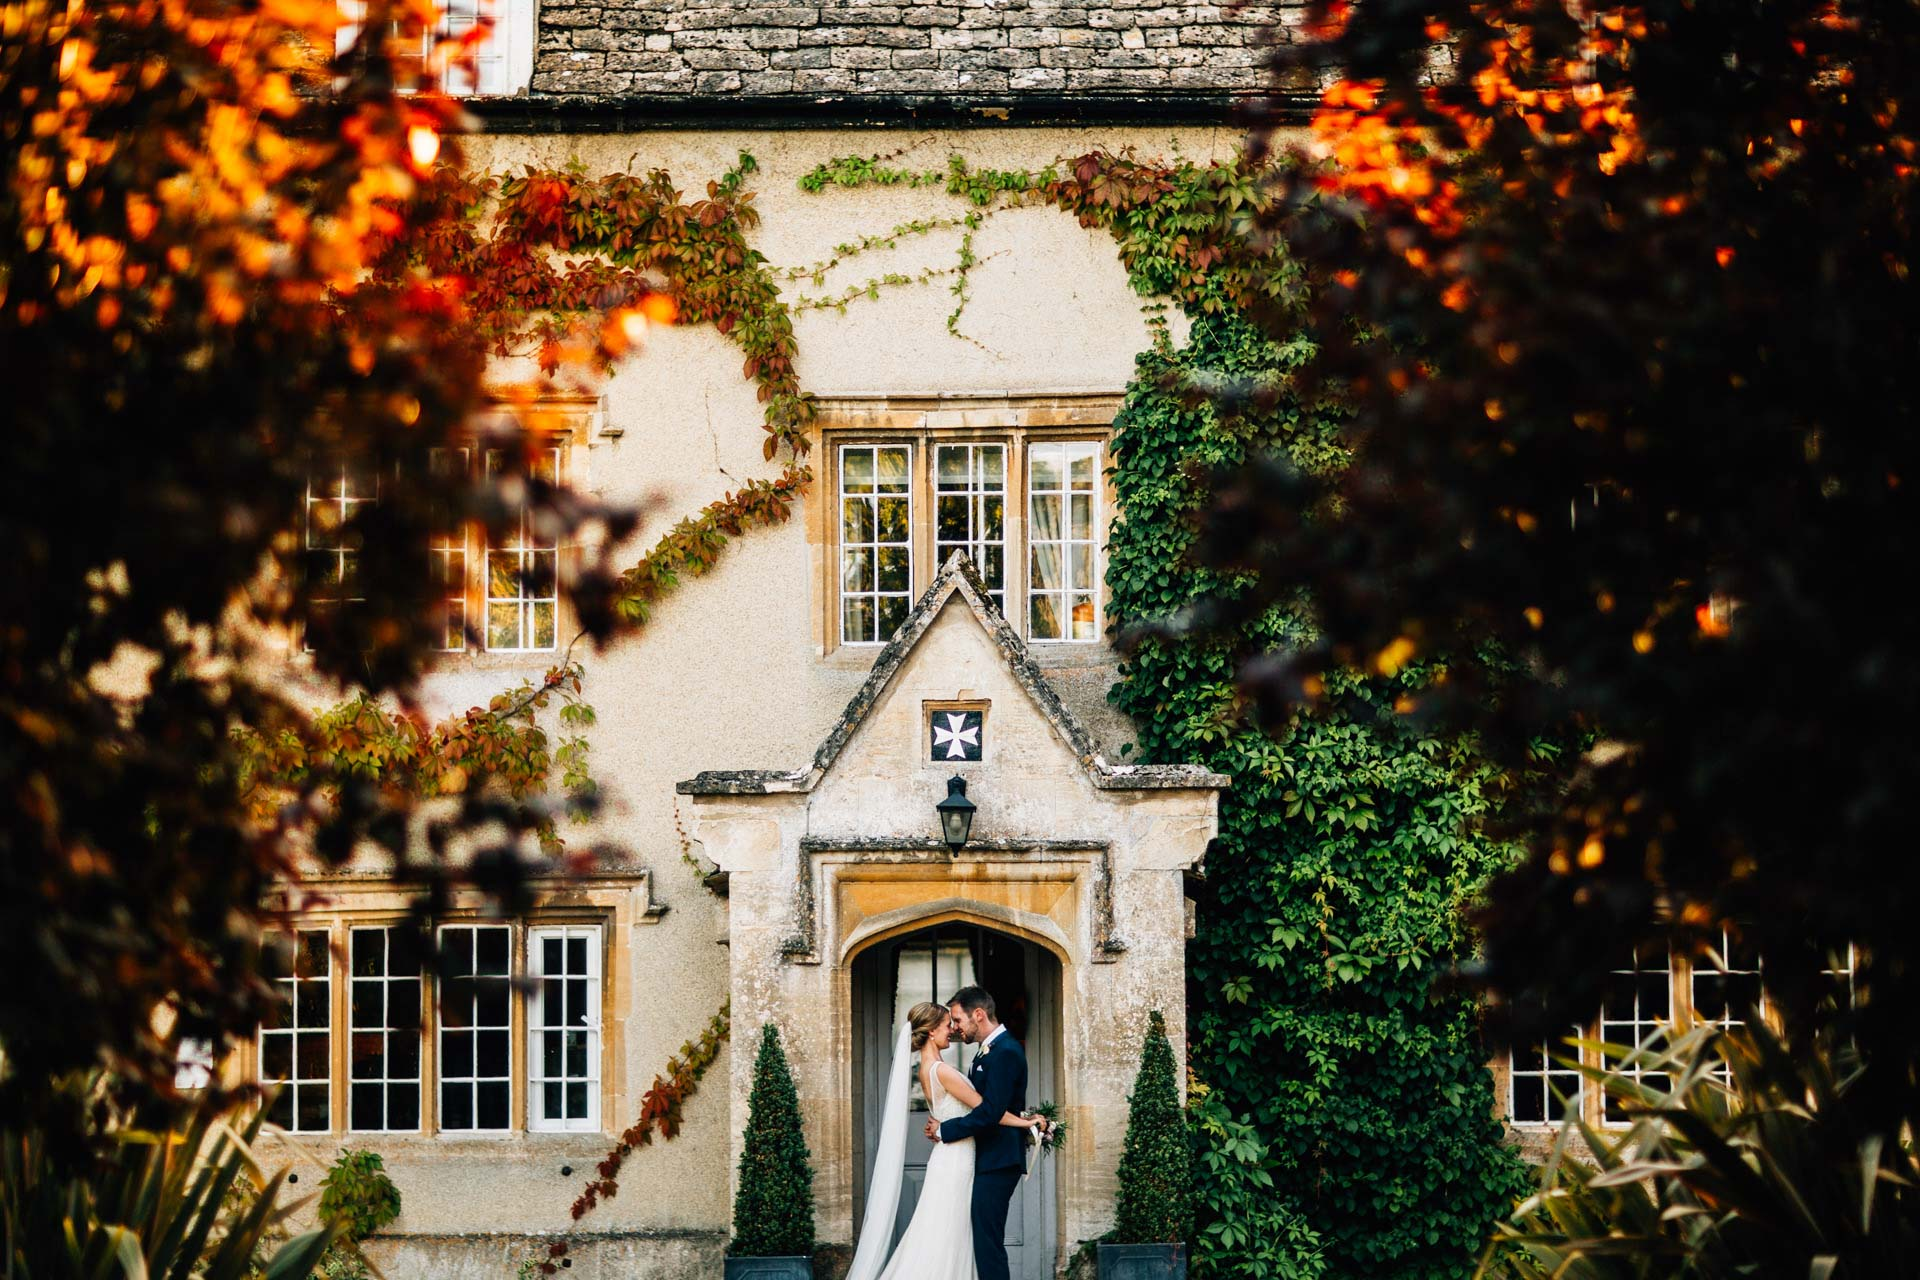 Best wedding photography 2016 - bride and groom outside impressive house